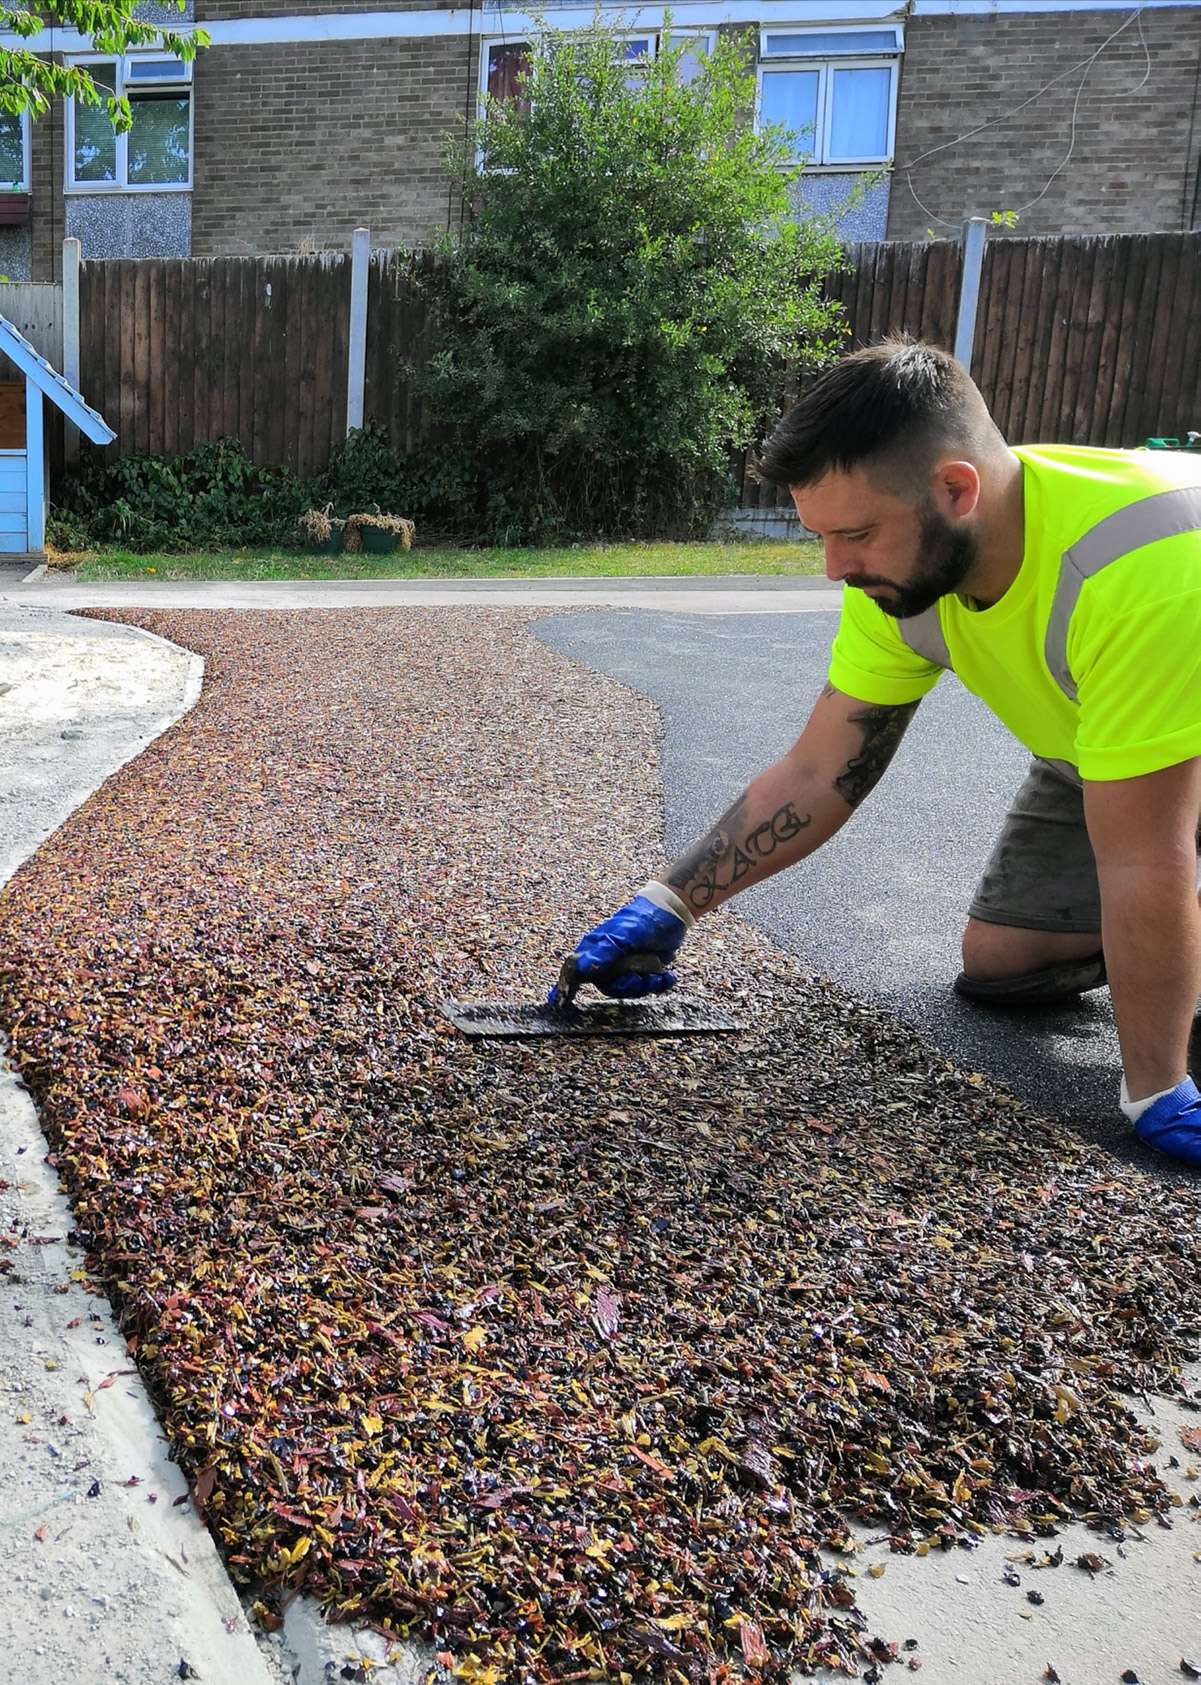 laying rubber mulch safety surface